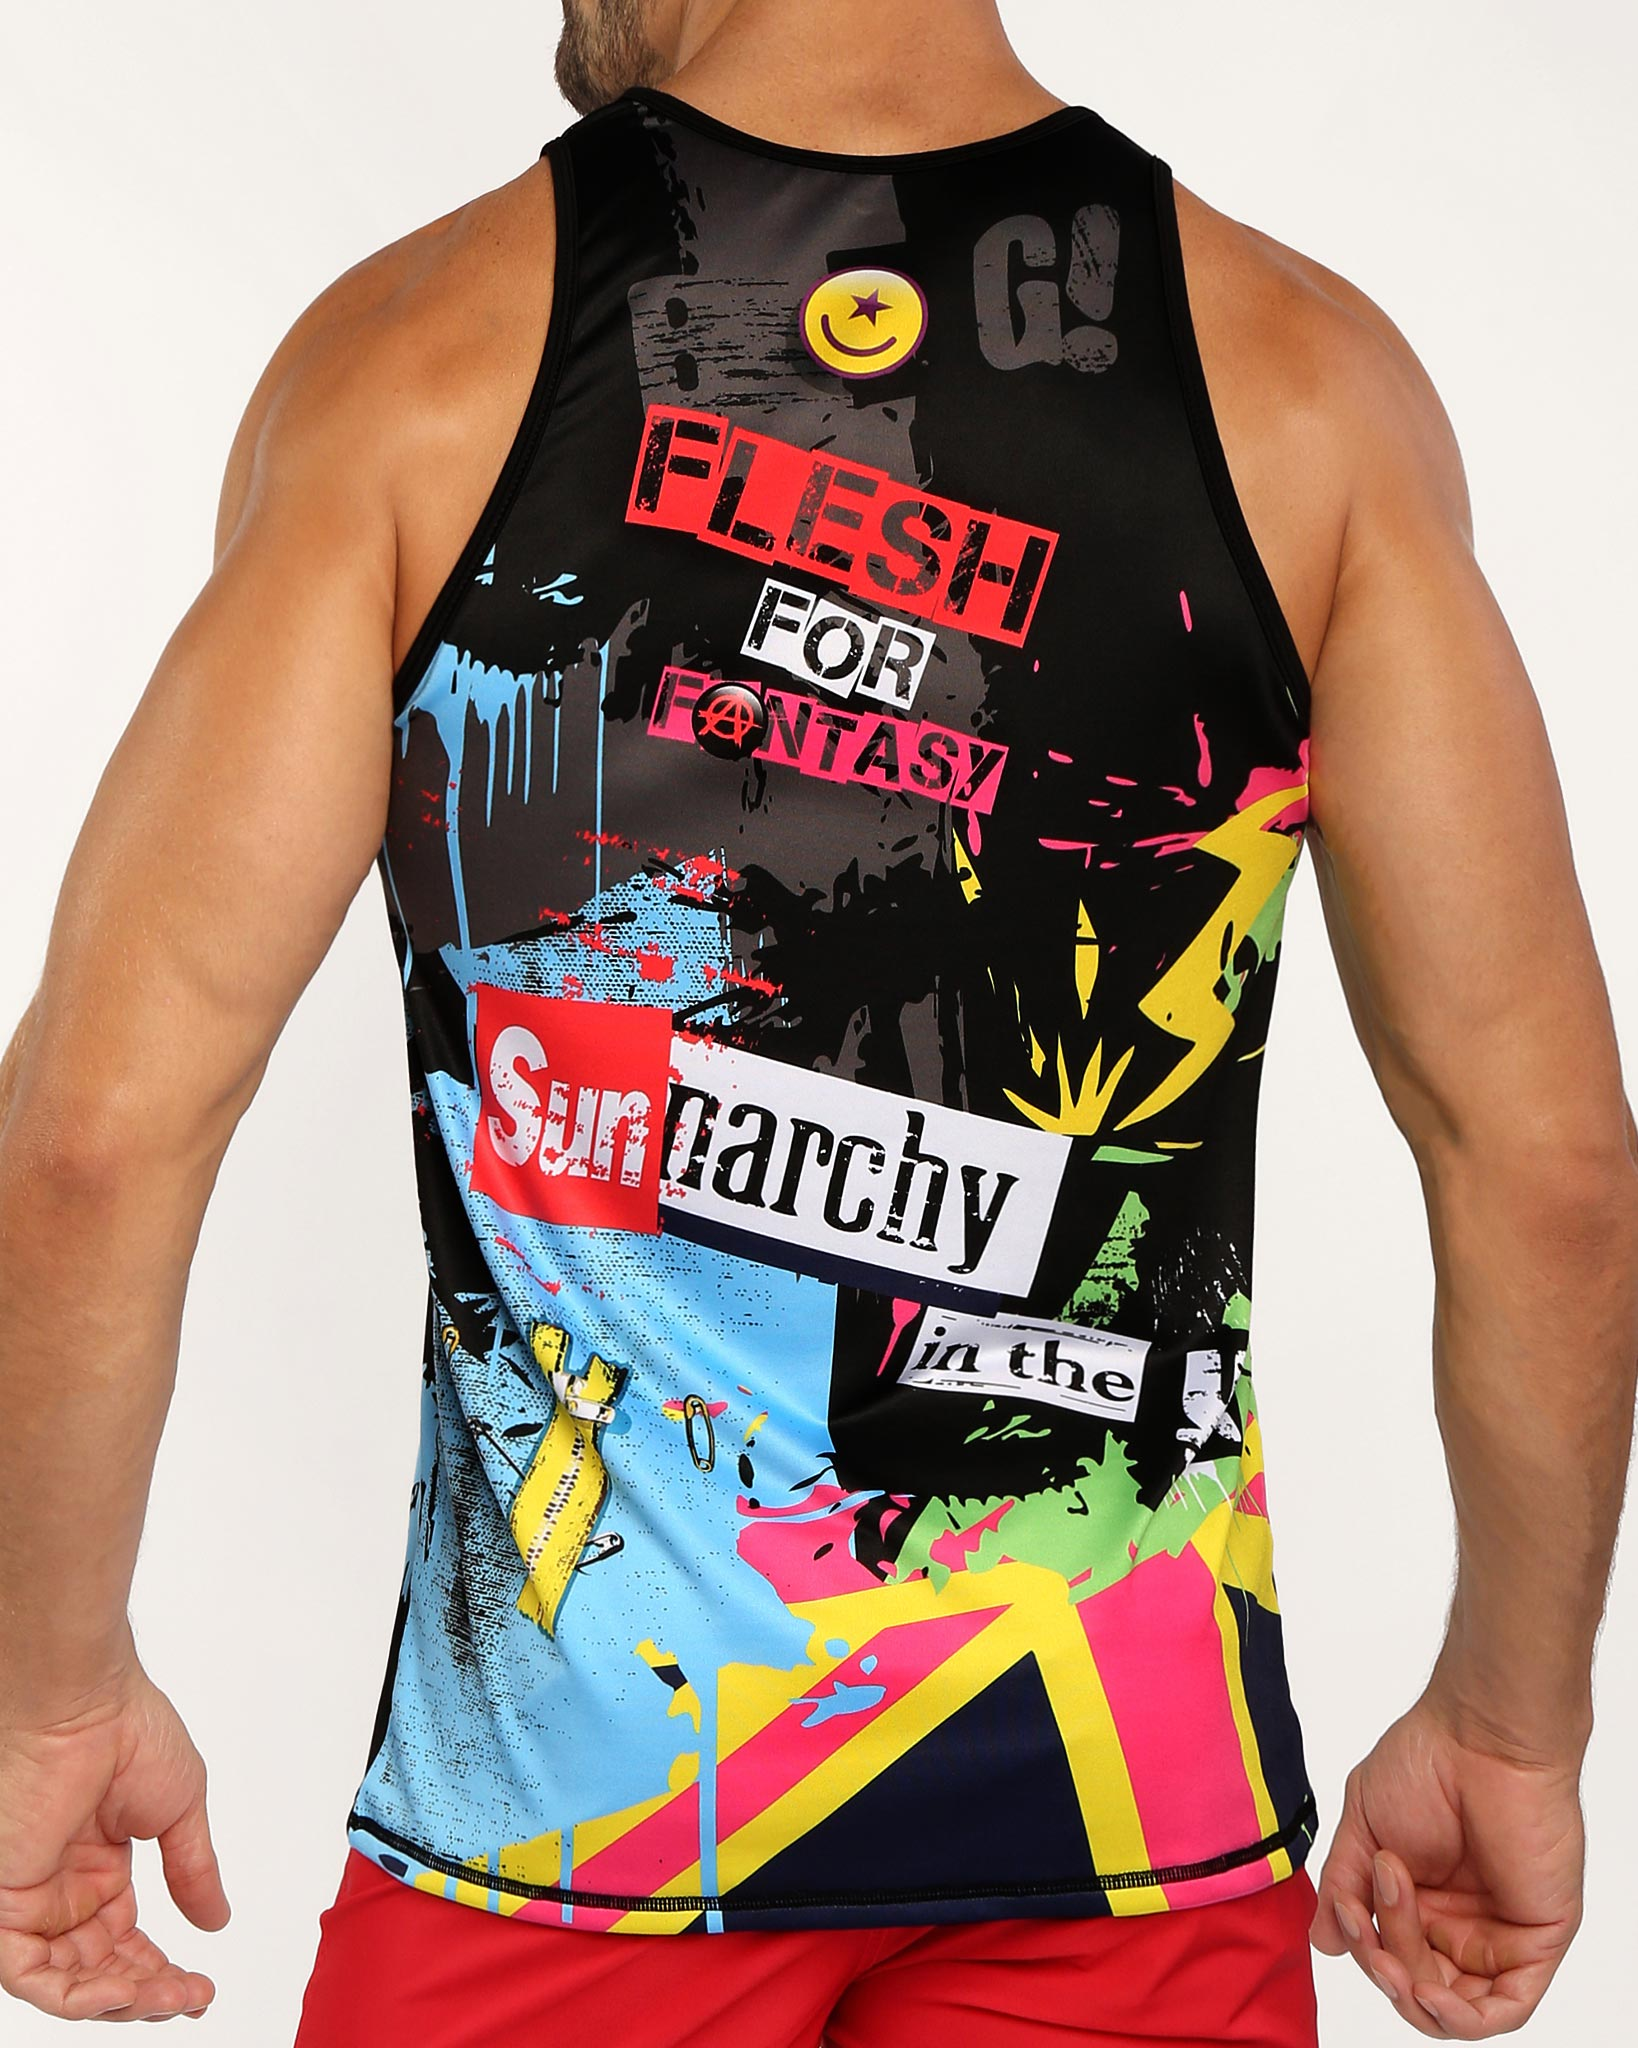 SUNNARCHY Tank Top Bang Clothes Men Tank Tops Beach Gear